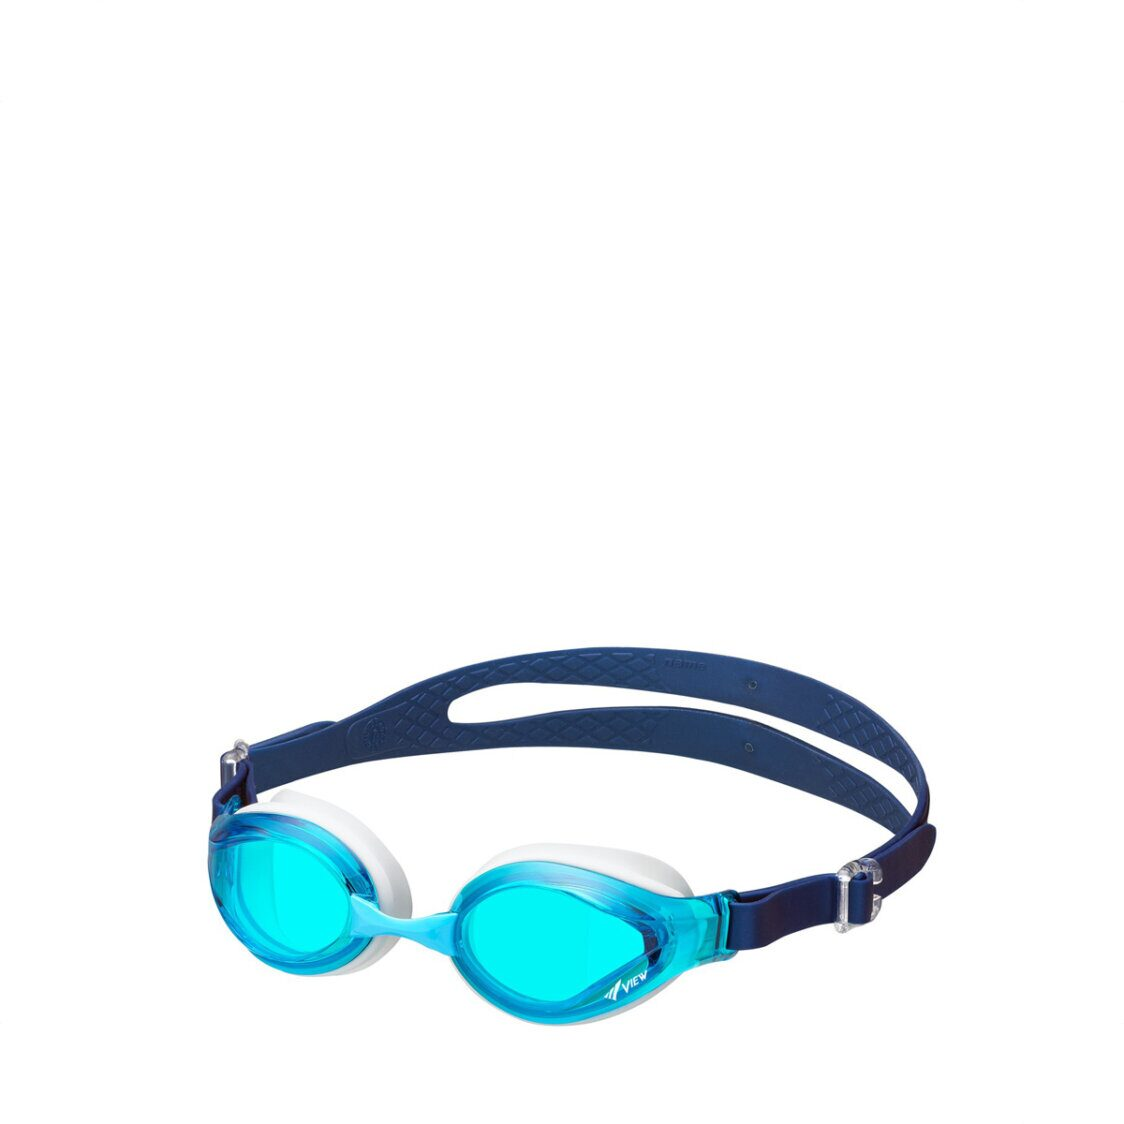 View Junior Goggle 6 To 12 Years Old Blue Clear AAV760JA